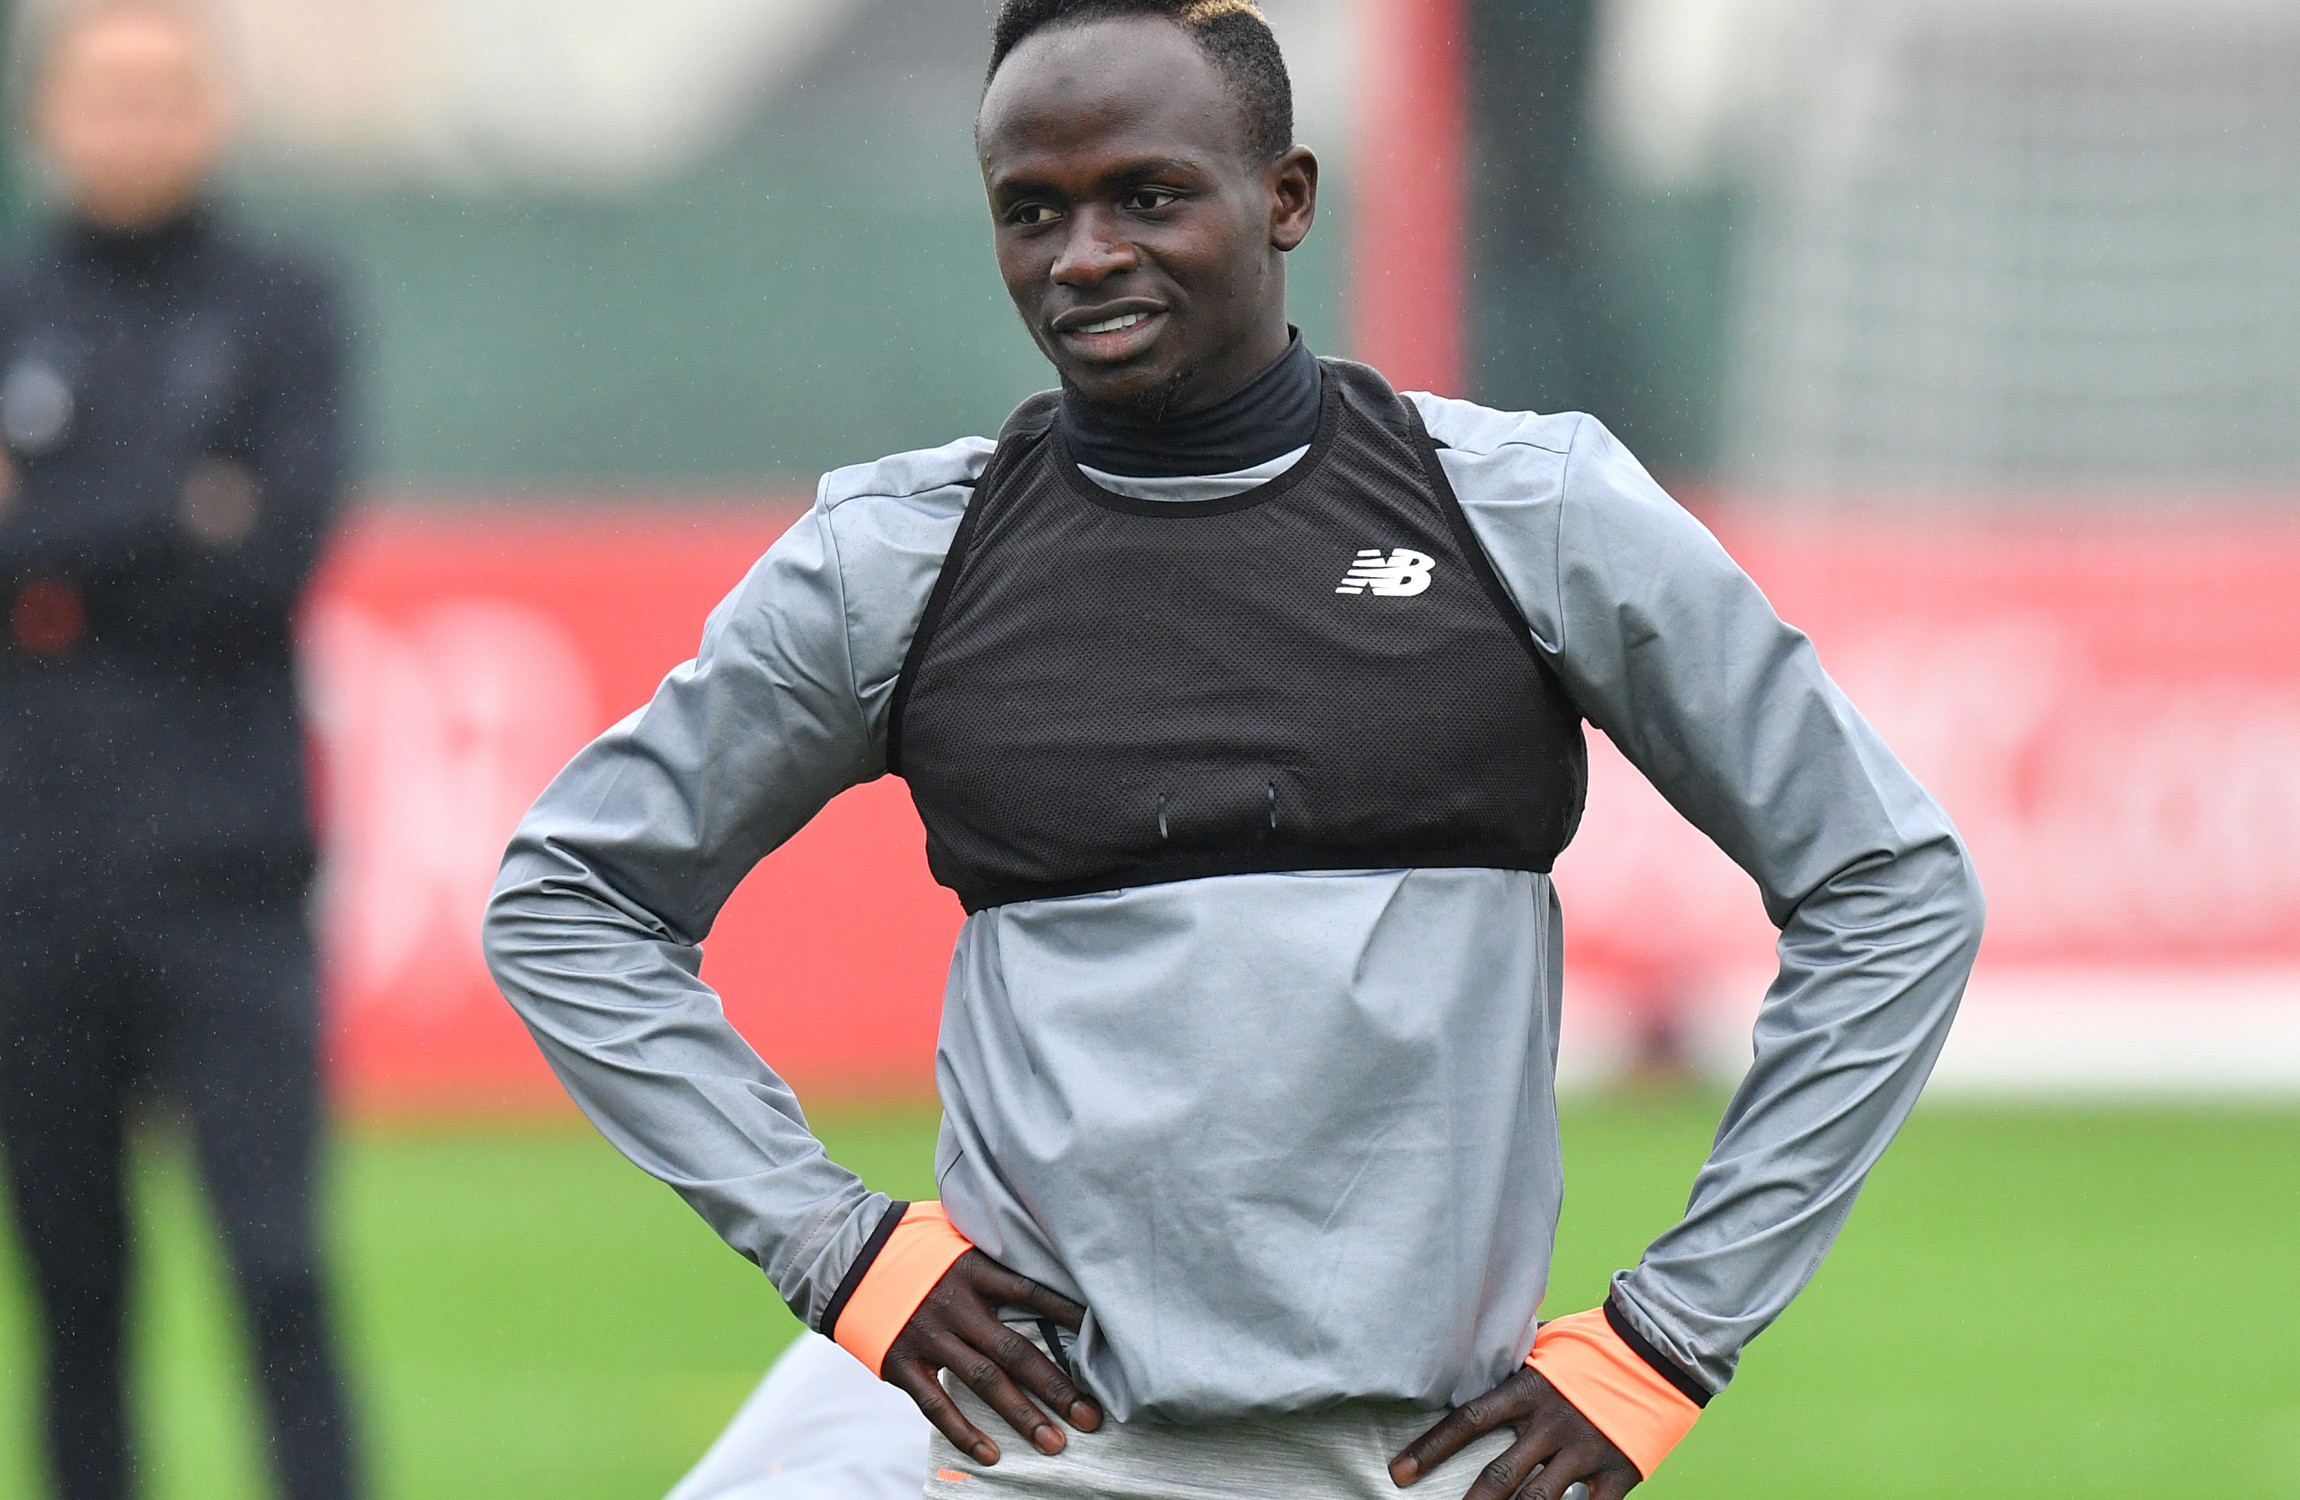 Jurgen Klopp hails 'machine' Sadio Mane after he makes Liverpool return